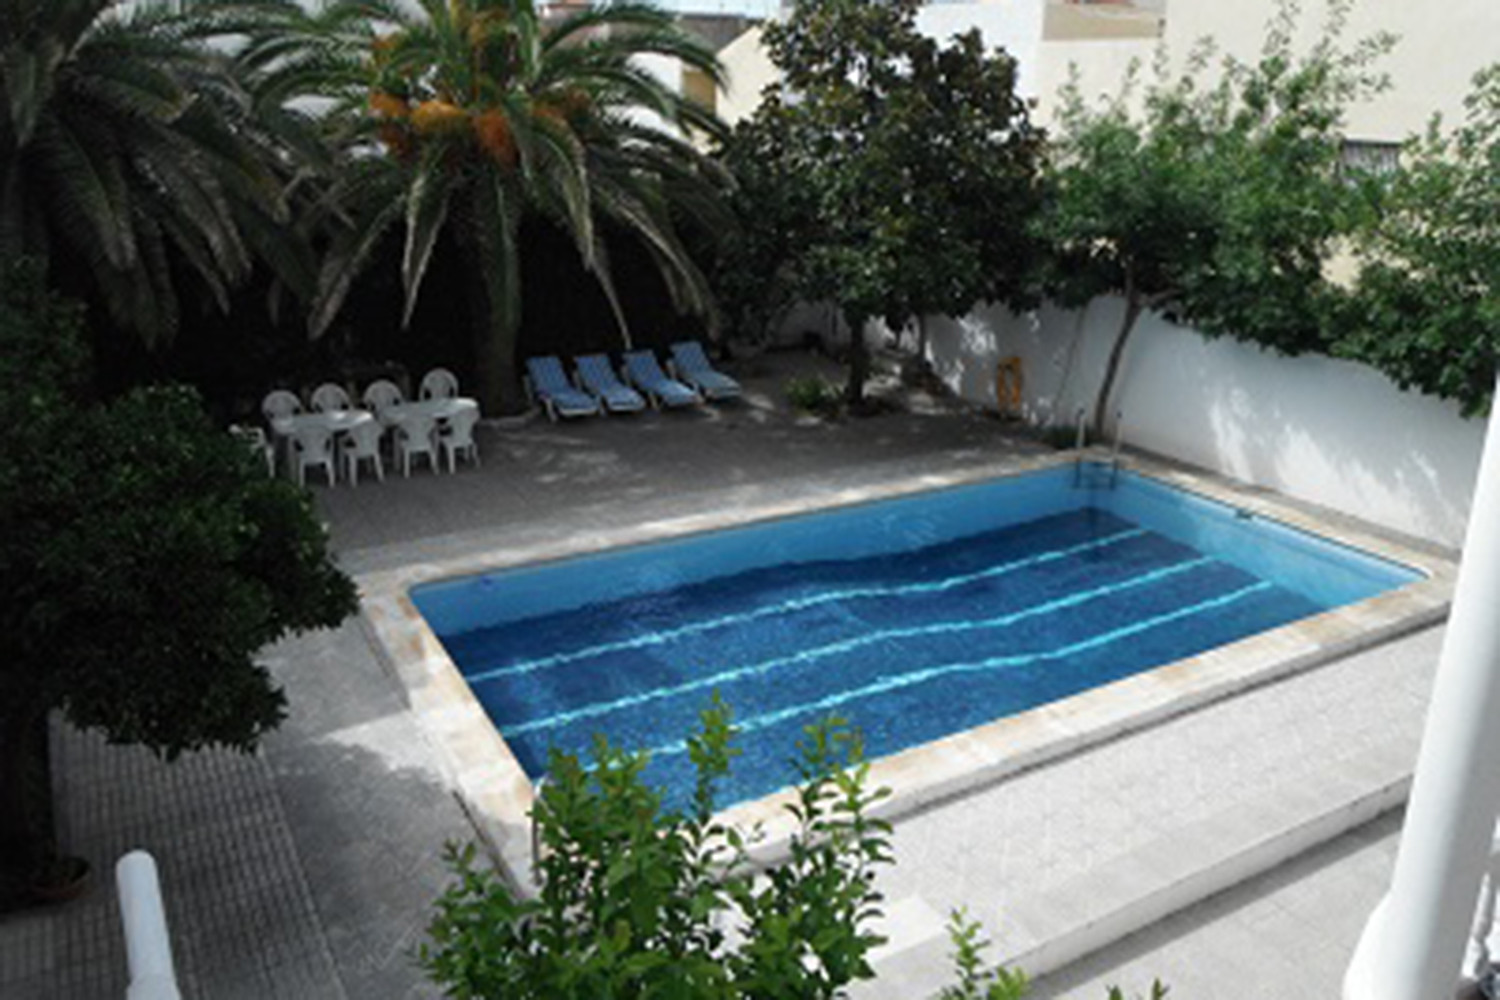 The swimming pool